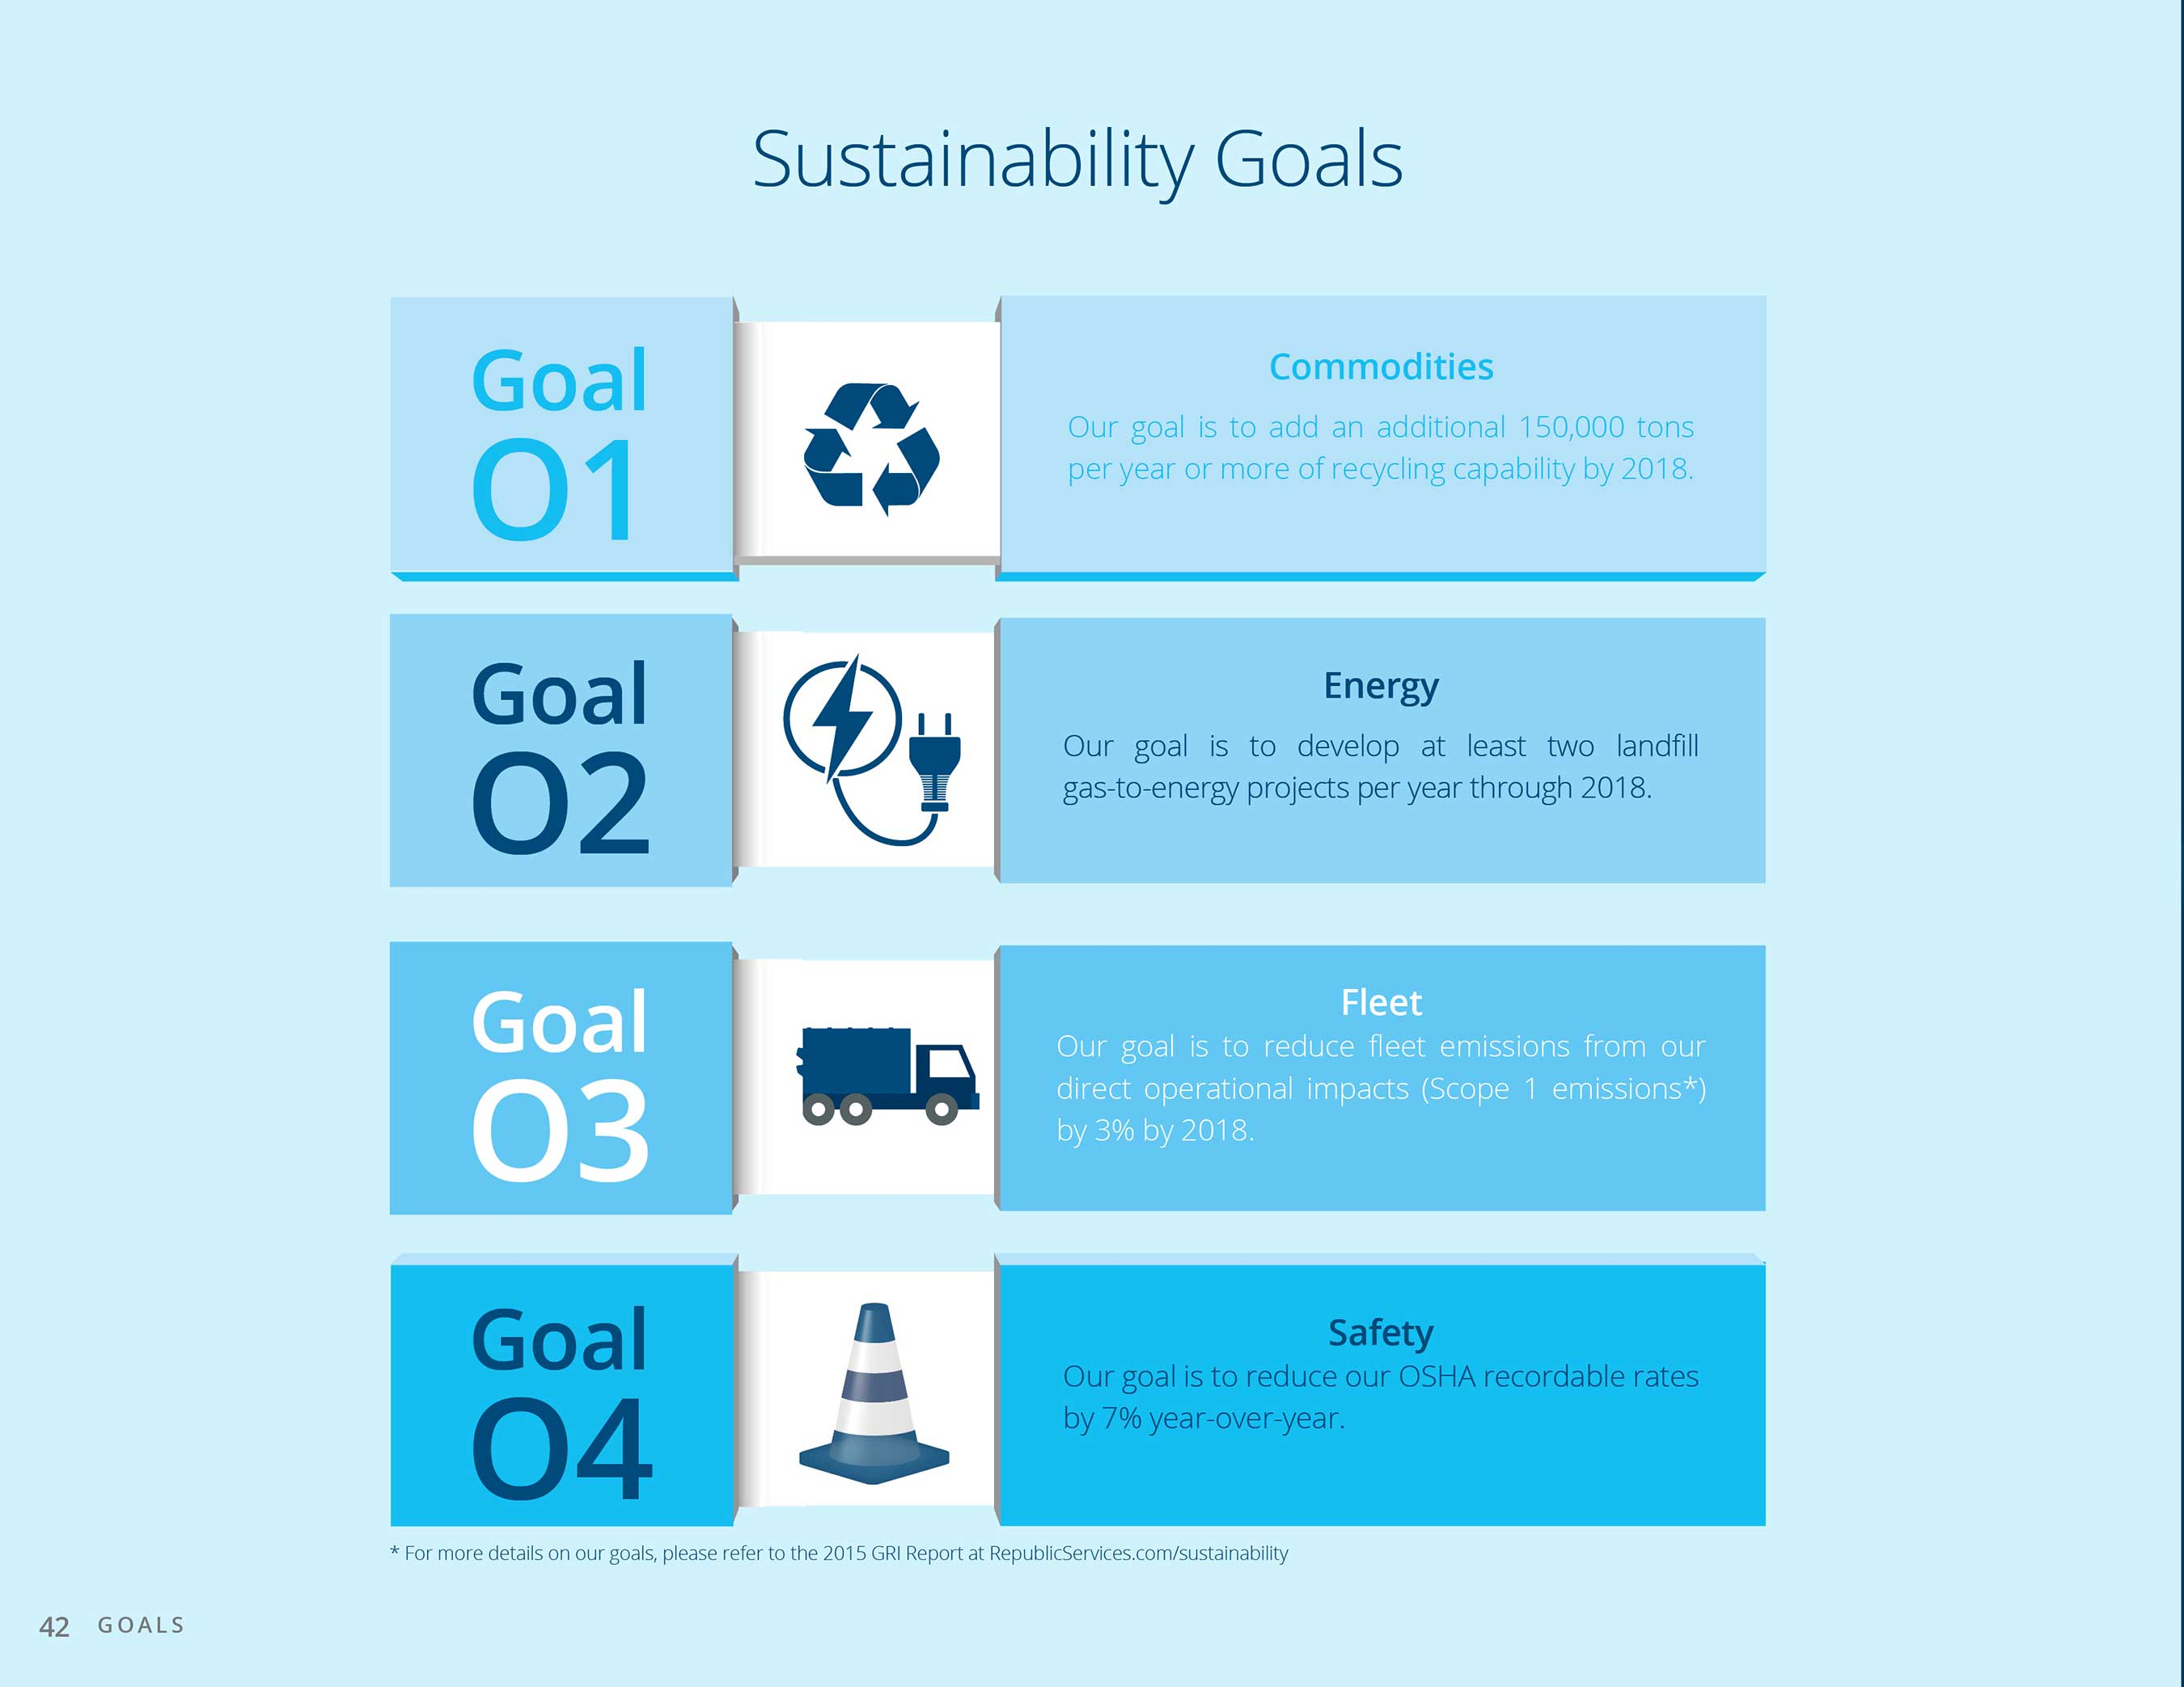 sustainability report Download the sustainability reports that document our efforts and track our progress toward reaching our sustainability goals.